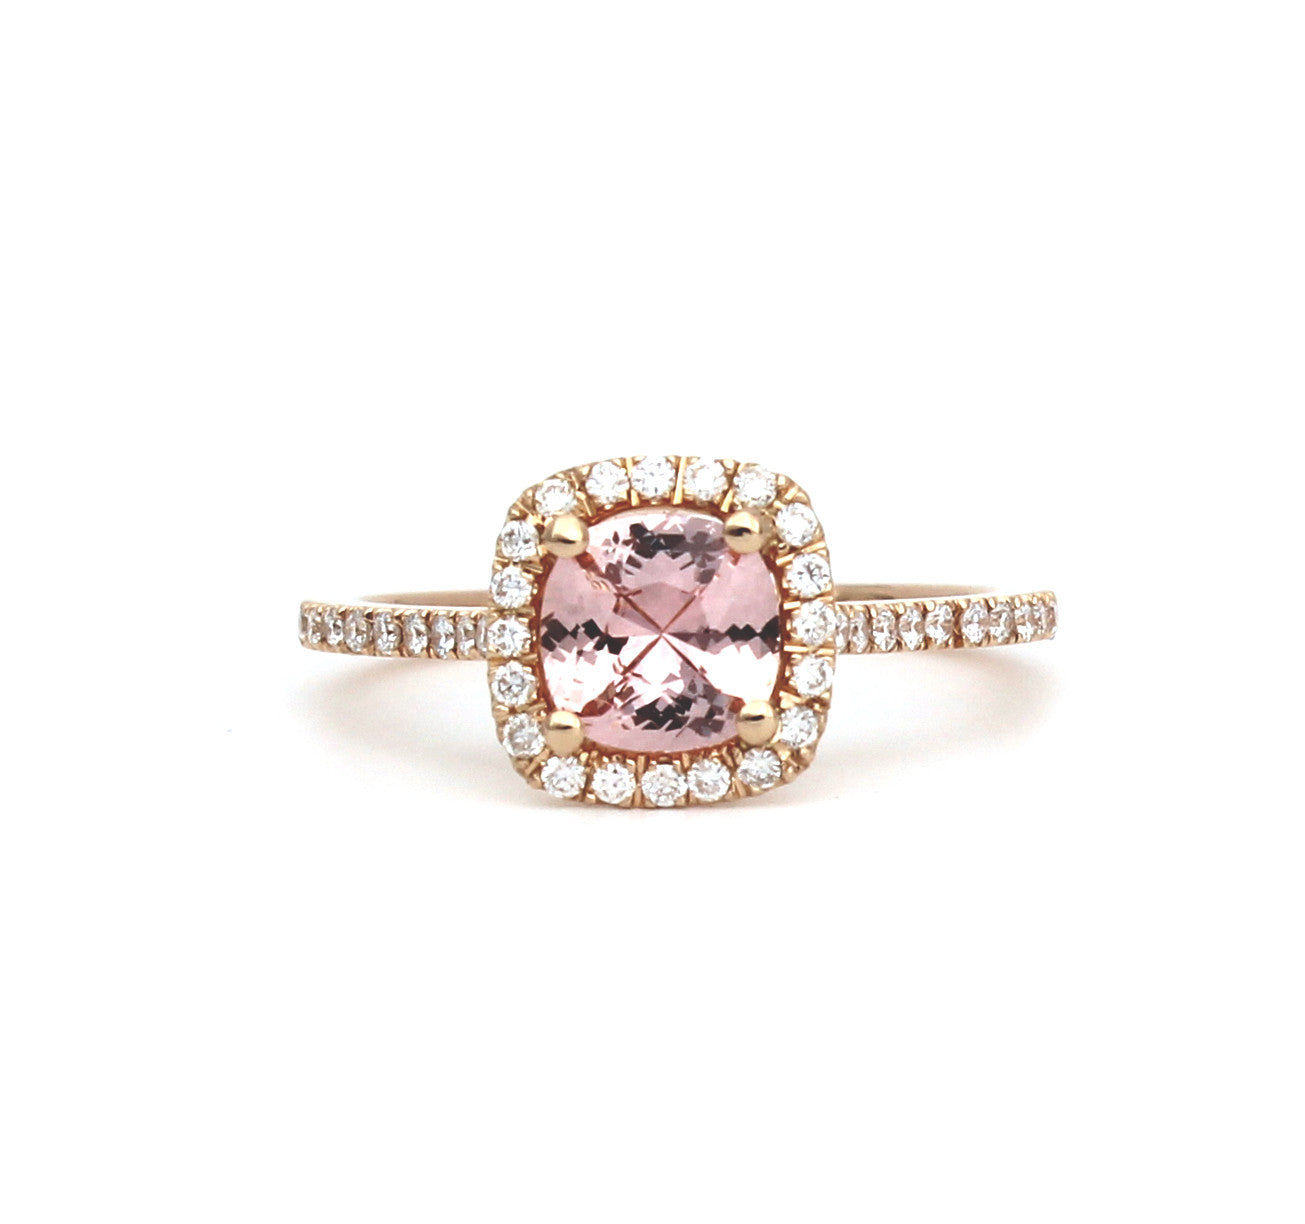 Lucy Miller Engagement Ring - Rose gold with sapphire surrounded by diamonds